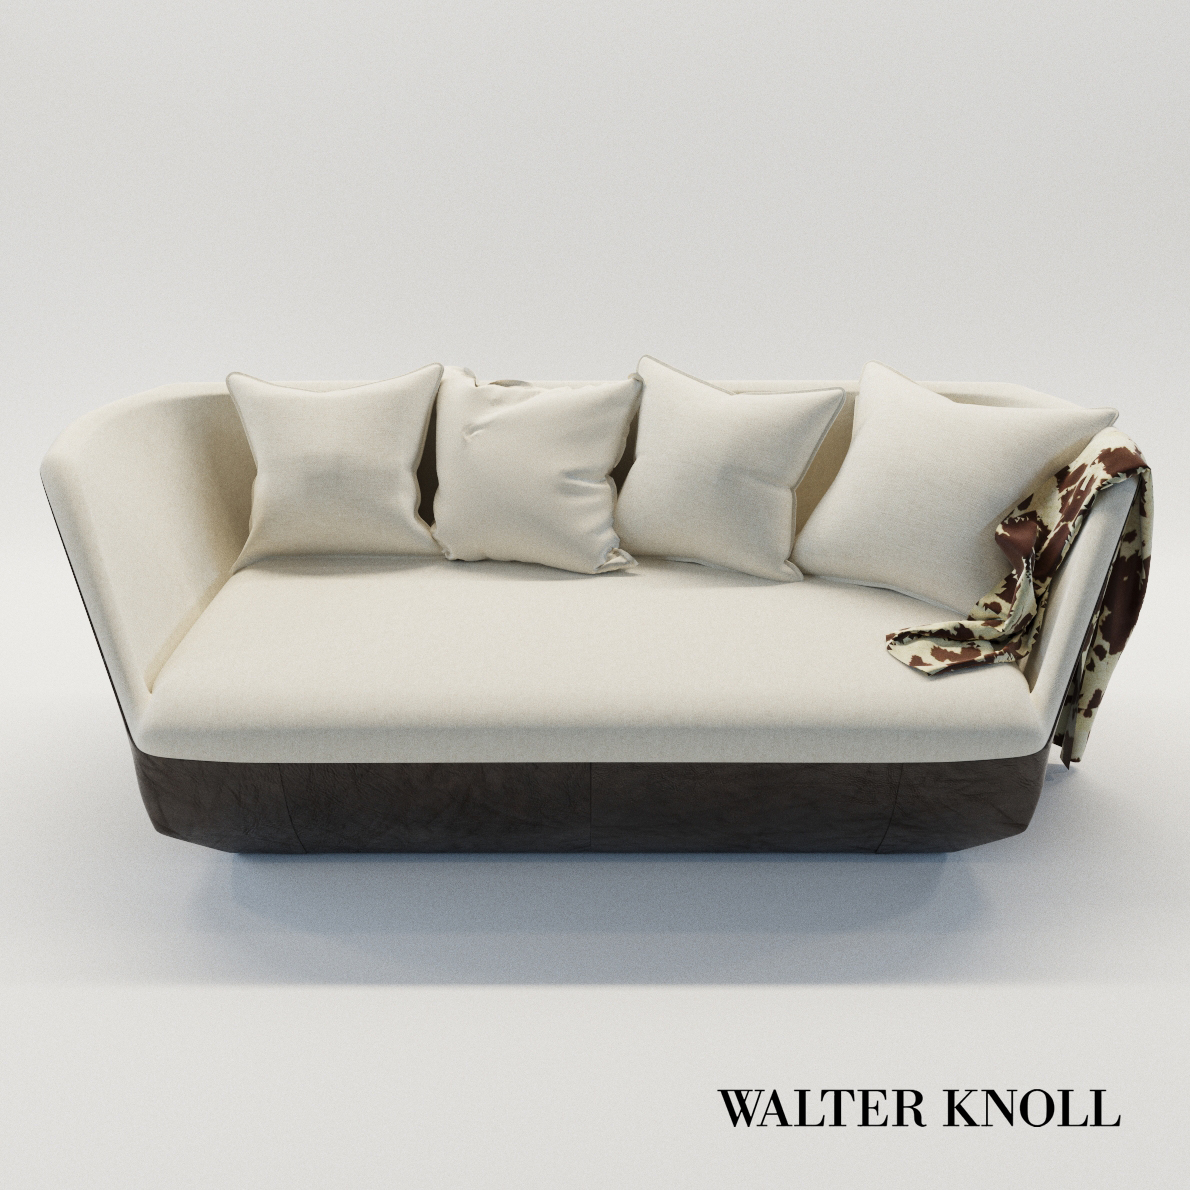 3d model Sofa Isanka – Design by EOOS (Walter Knoll)